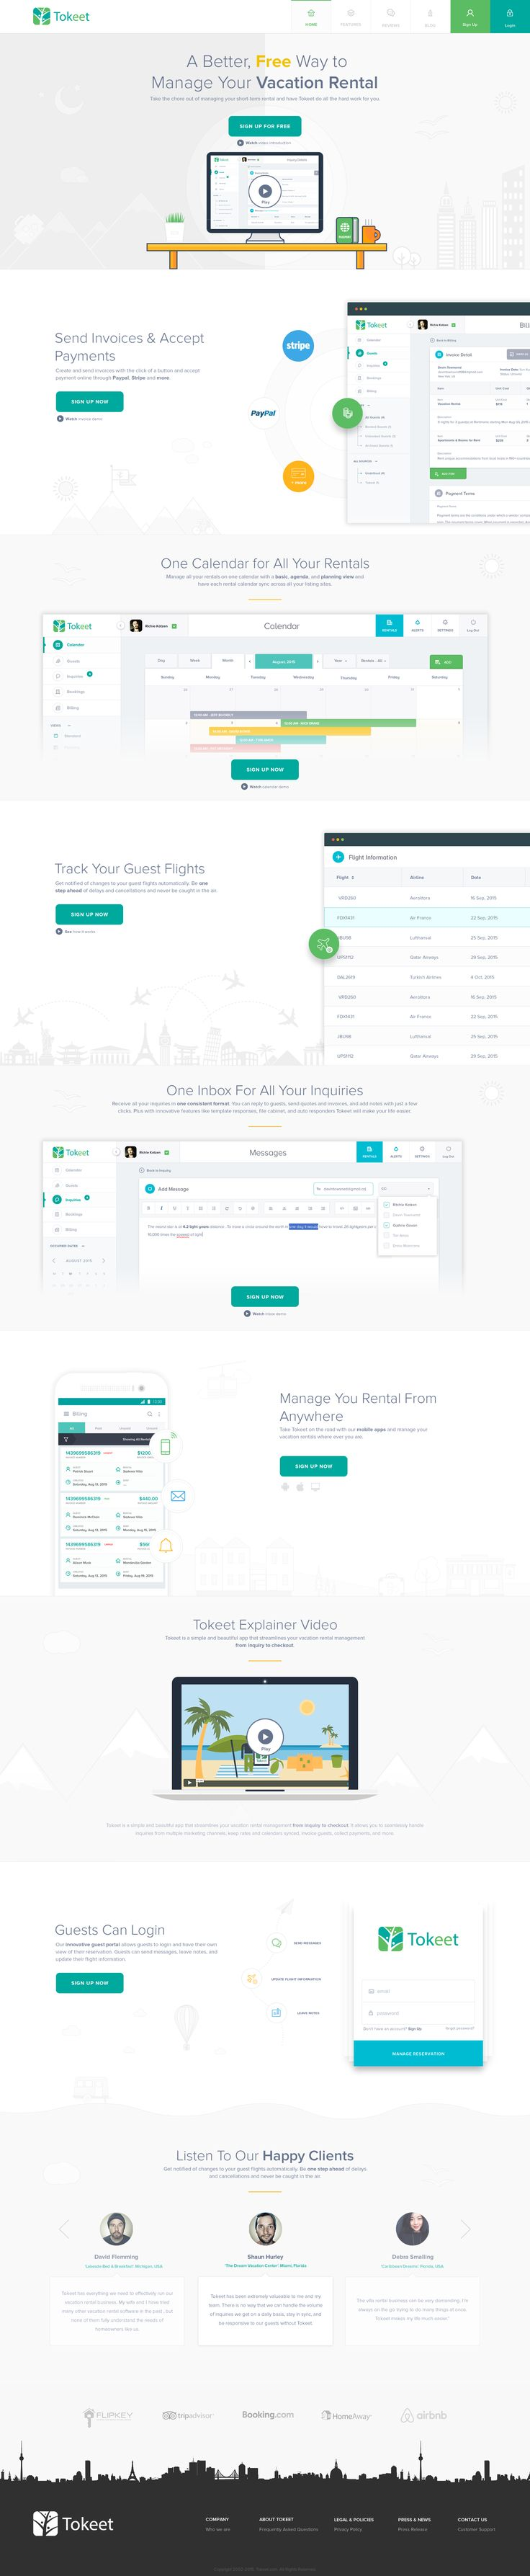 Vacation rental management   landing page   full